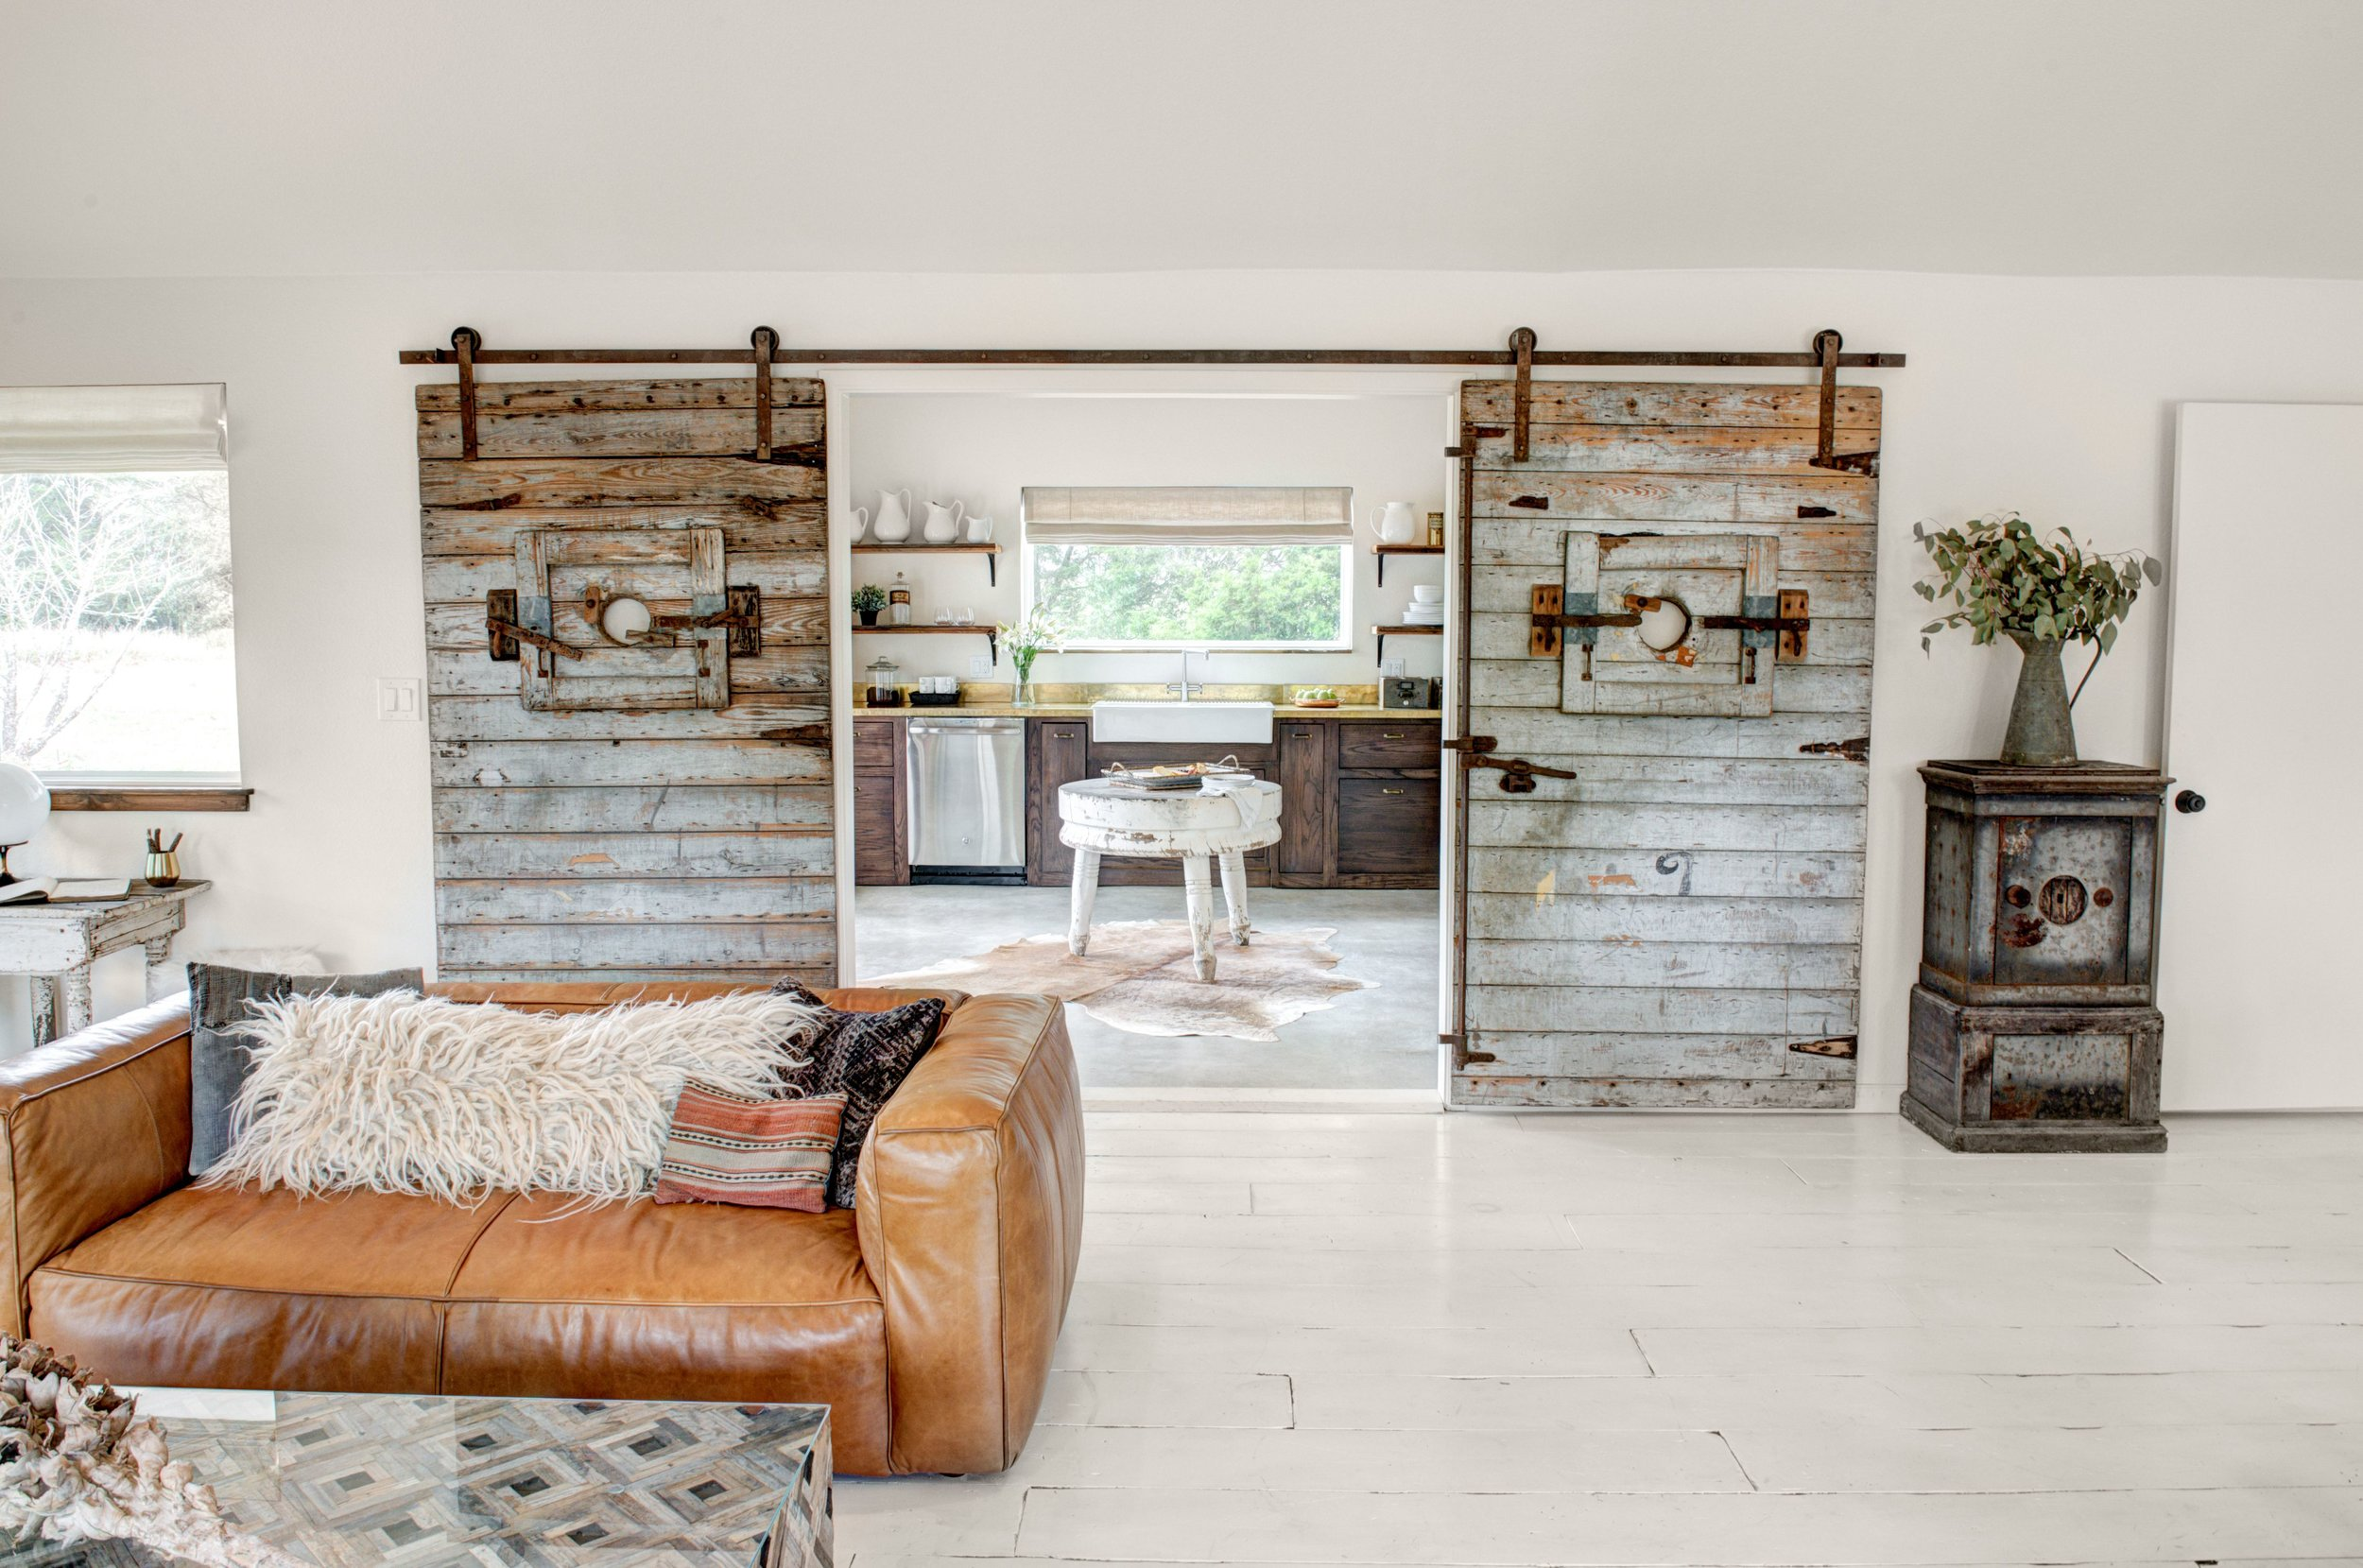 Reclaimed cotton gin doors separate the Boho kitchen from the great room.